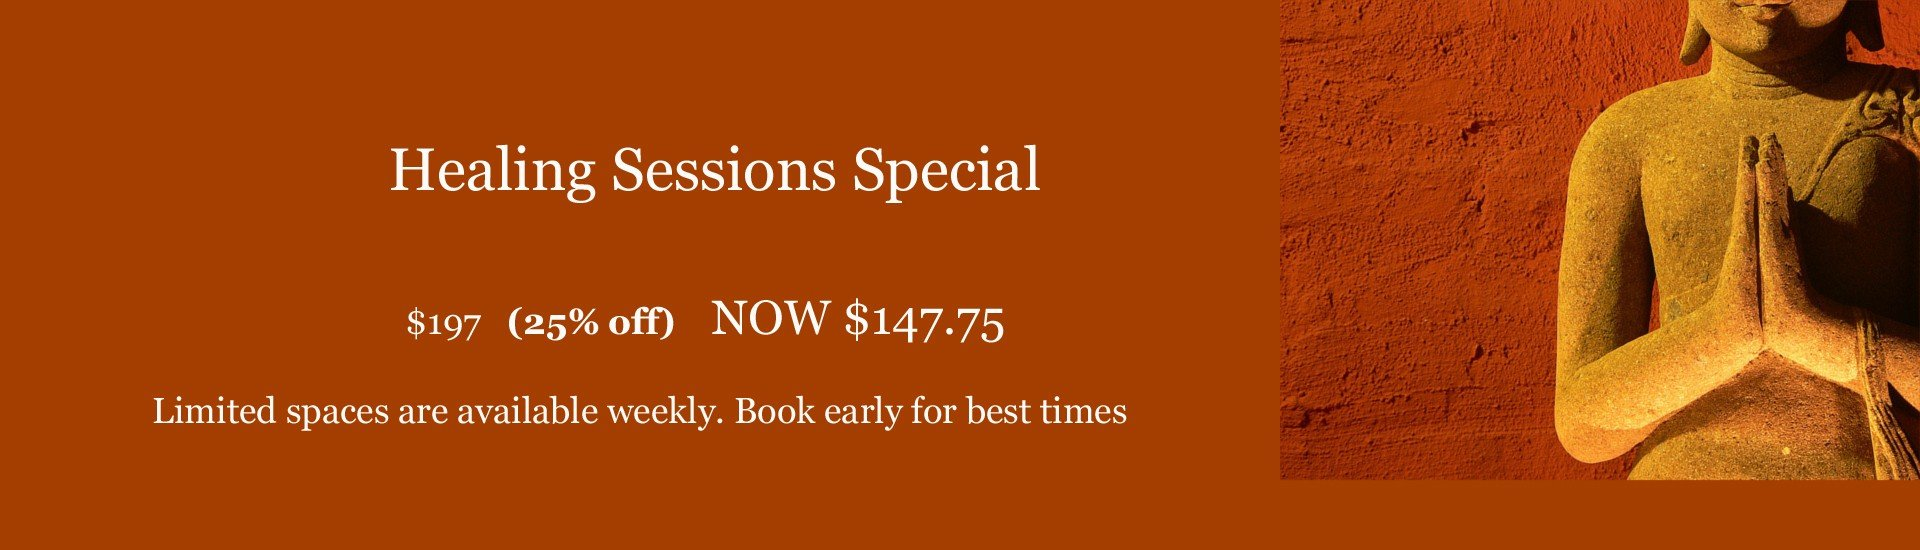 Healing Sessions Special